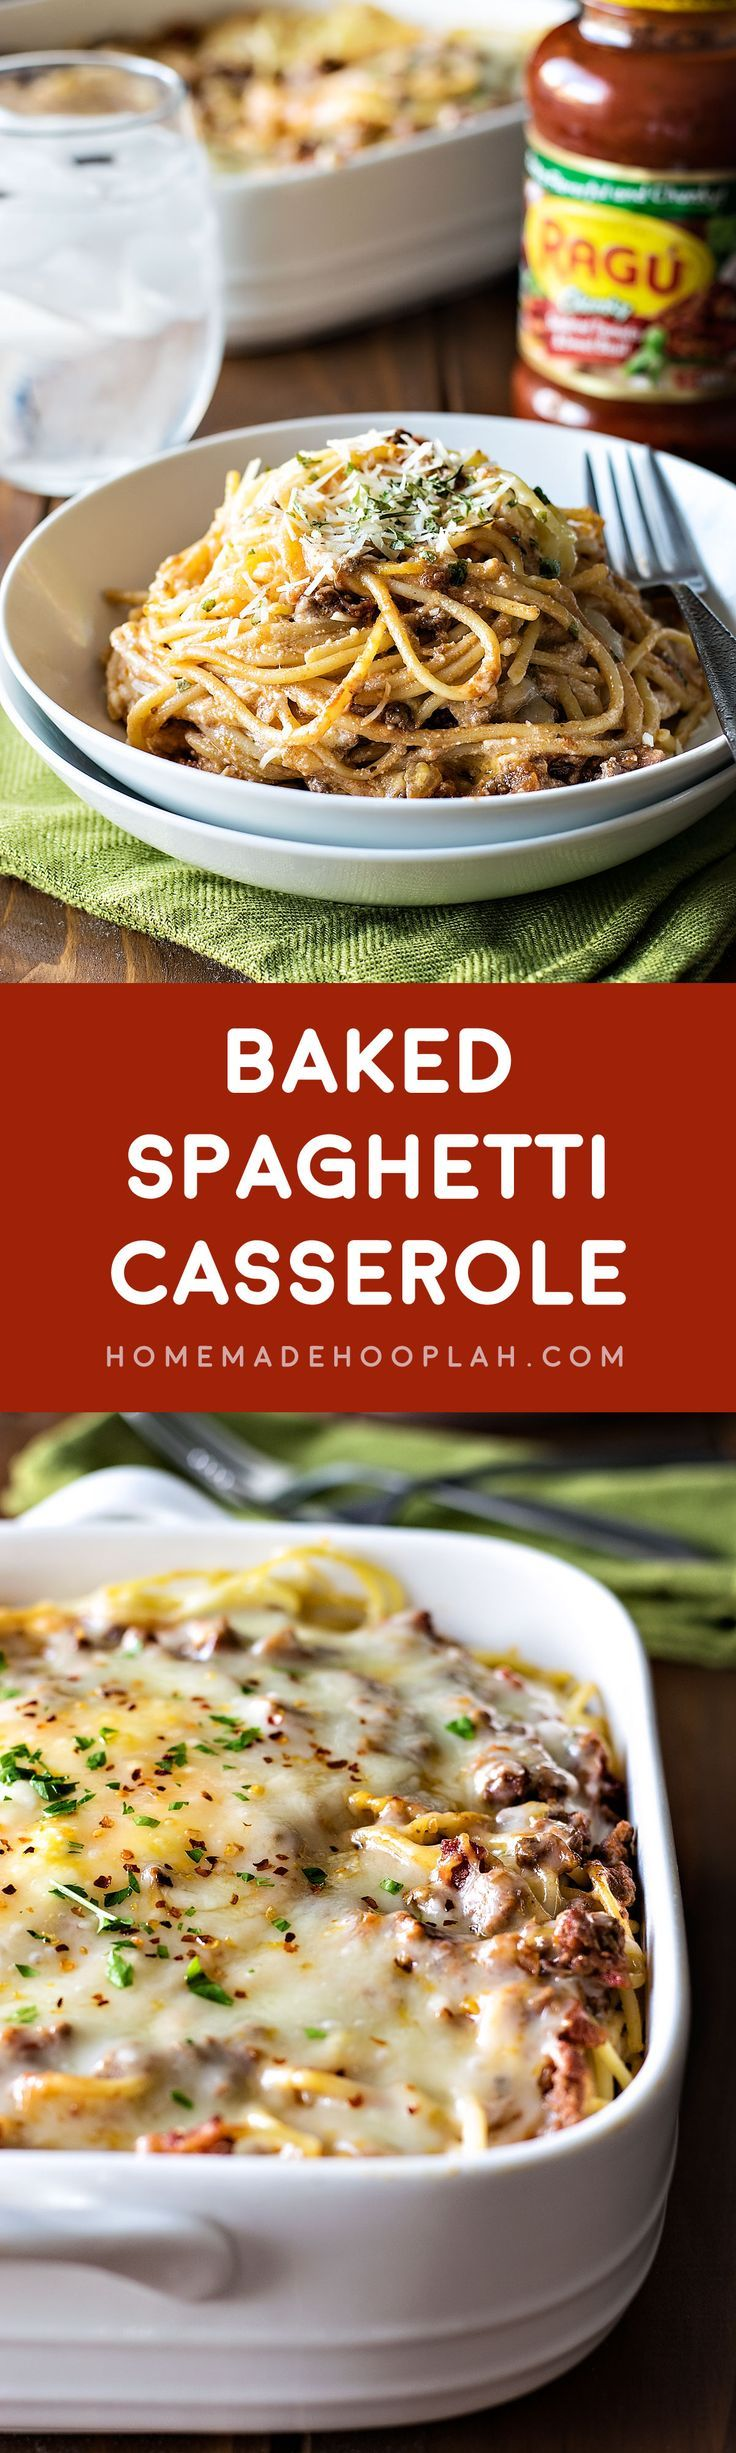 Baked Spaghetti Casserole! Revamp your boring spaghetti by baking it in a deep dish filled with delicious cheeses, savory meats, and Ragú sauce. | HomemadeHooplah.com #simmeredintradition #AD